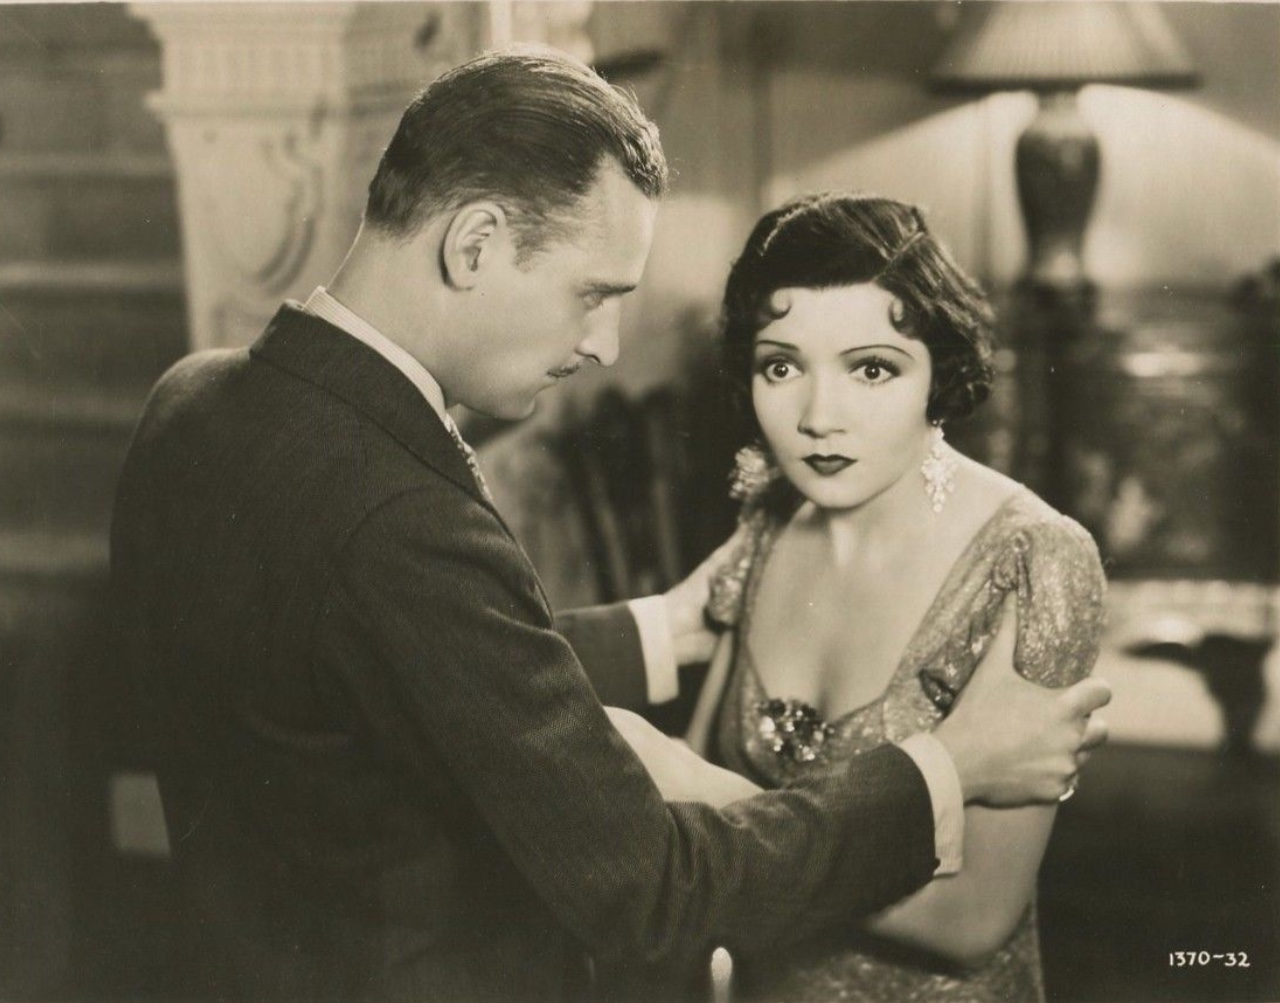 Claudette Colbert and George Meeker in The Misleading Lady (1932)